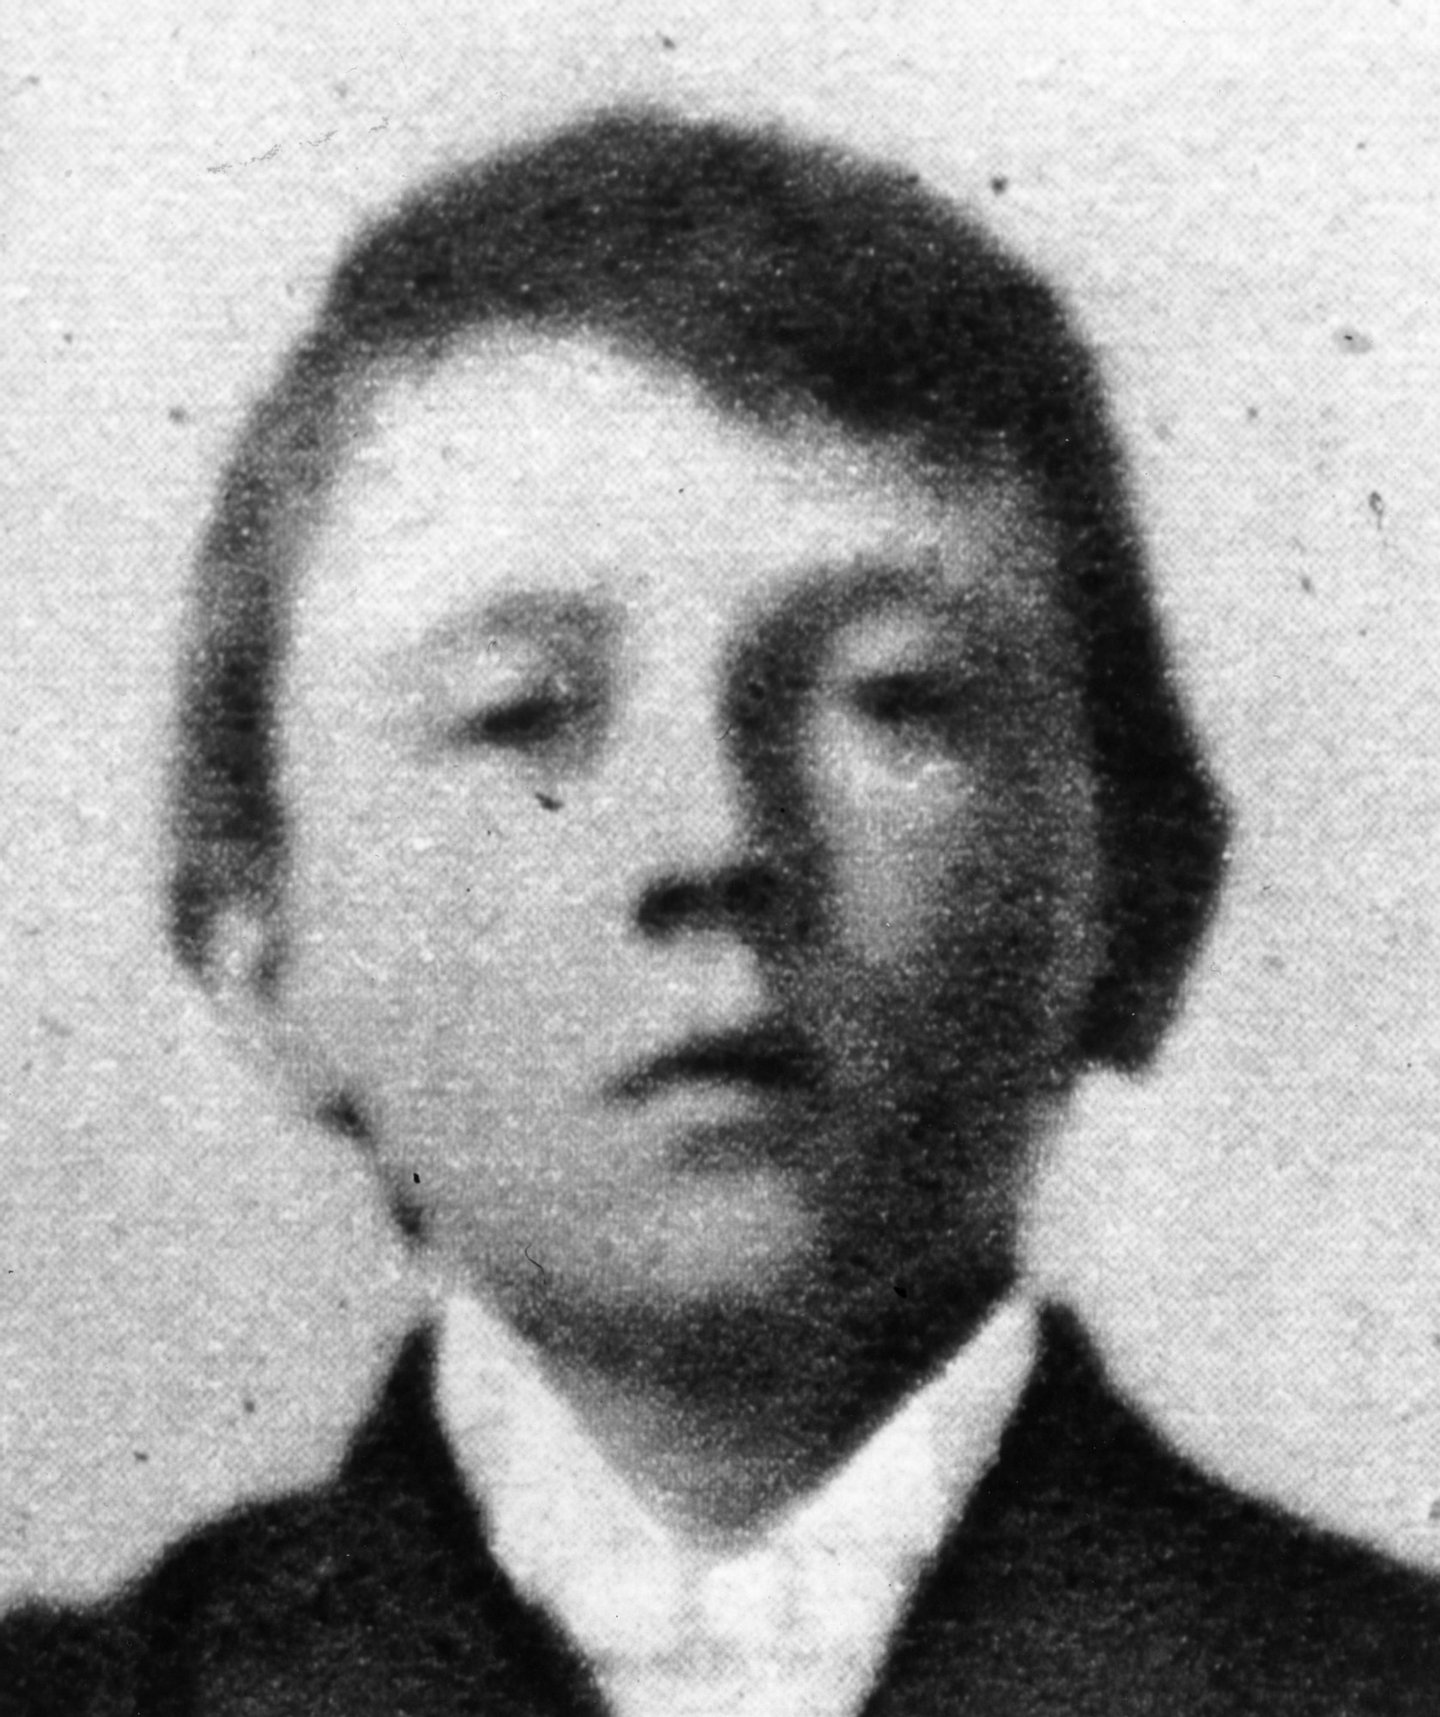 1899:  Austrian-born German dictator Adolf Hitler (1889 - 1945), as a ten year old boy.  (Photo by Hulton Archive/Getty Images)